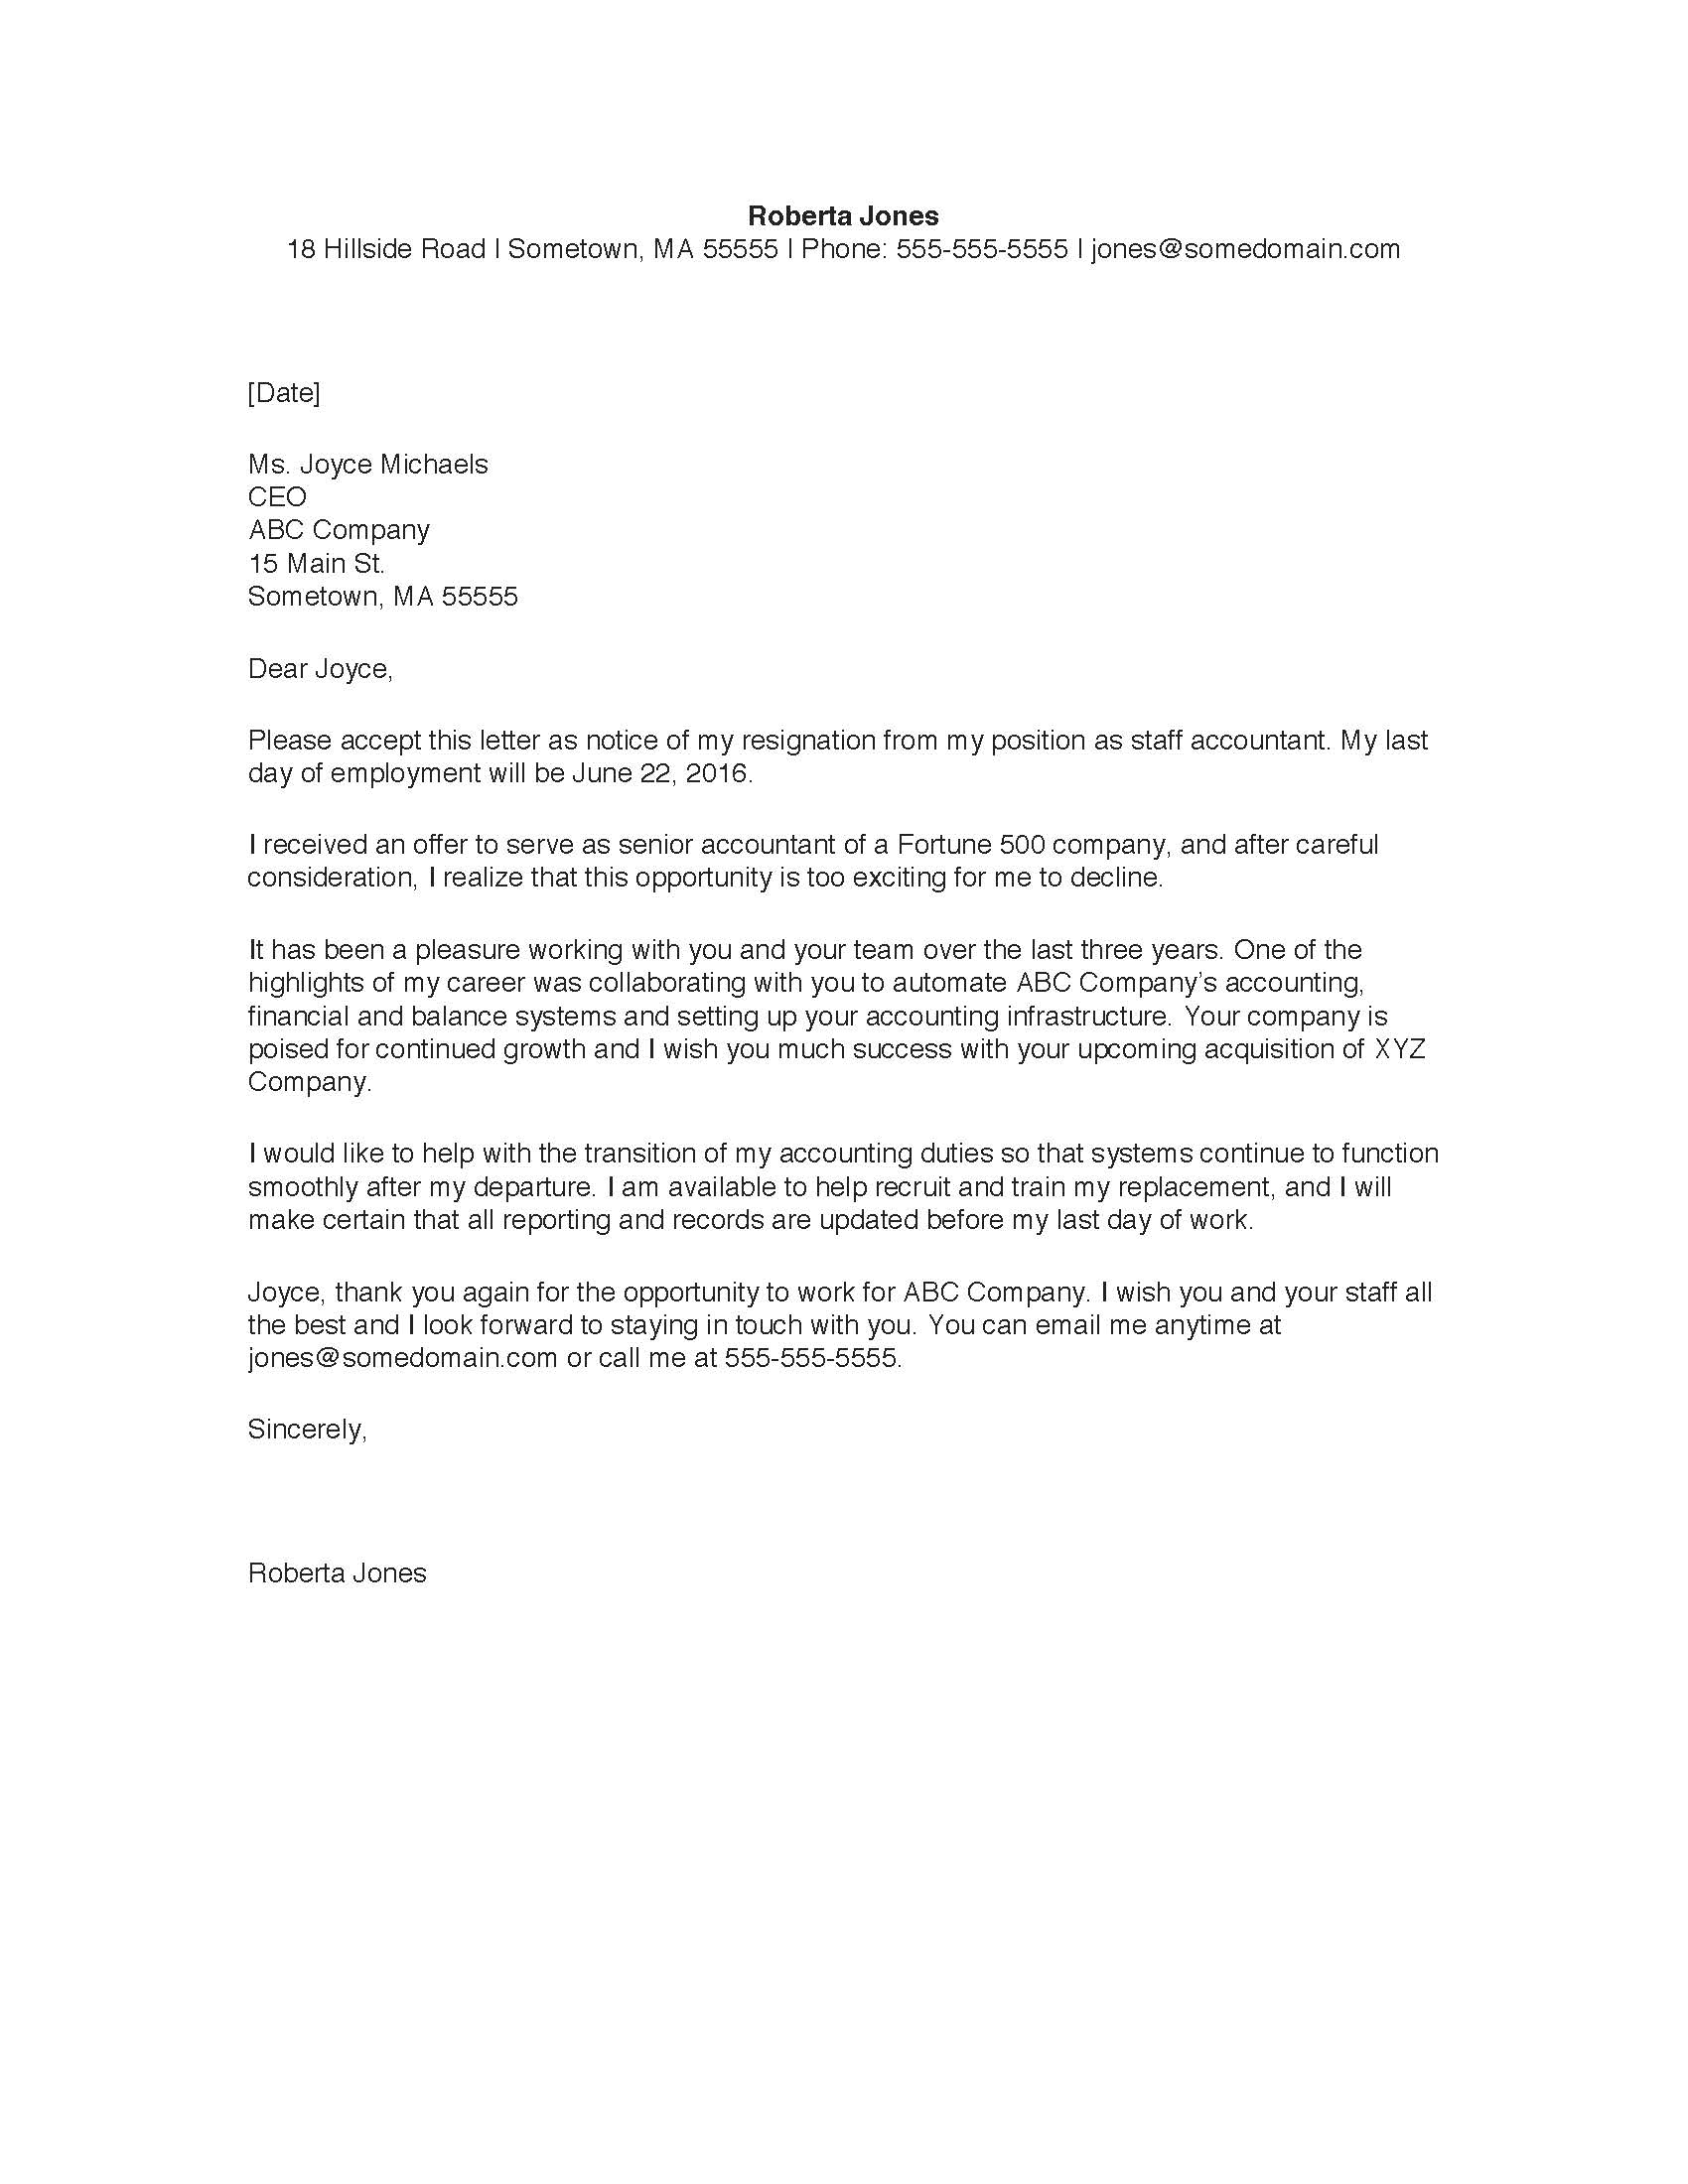 Sample resignation letter monster sample resignation letter altavistaventures